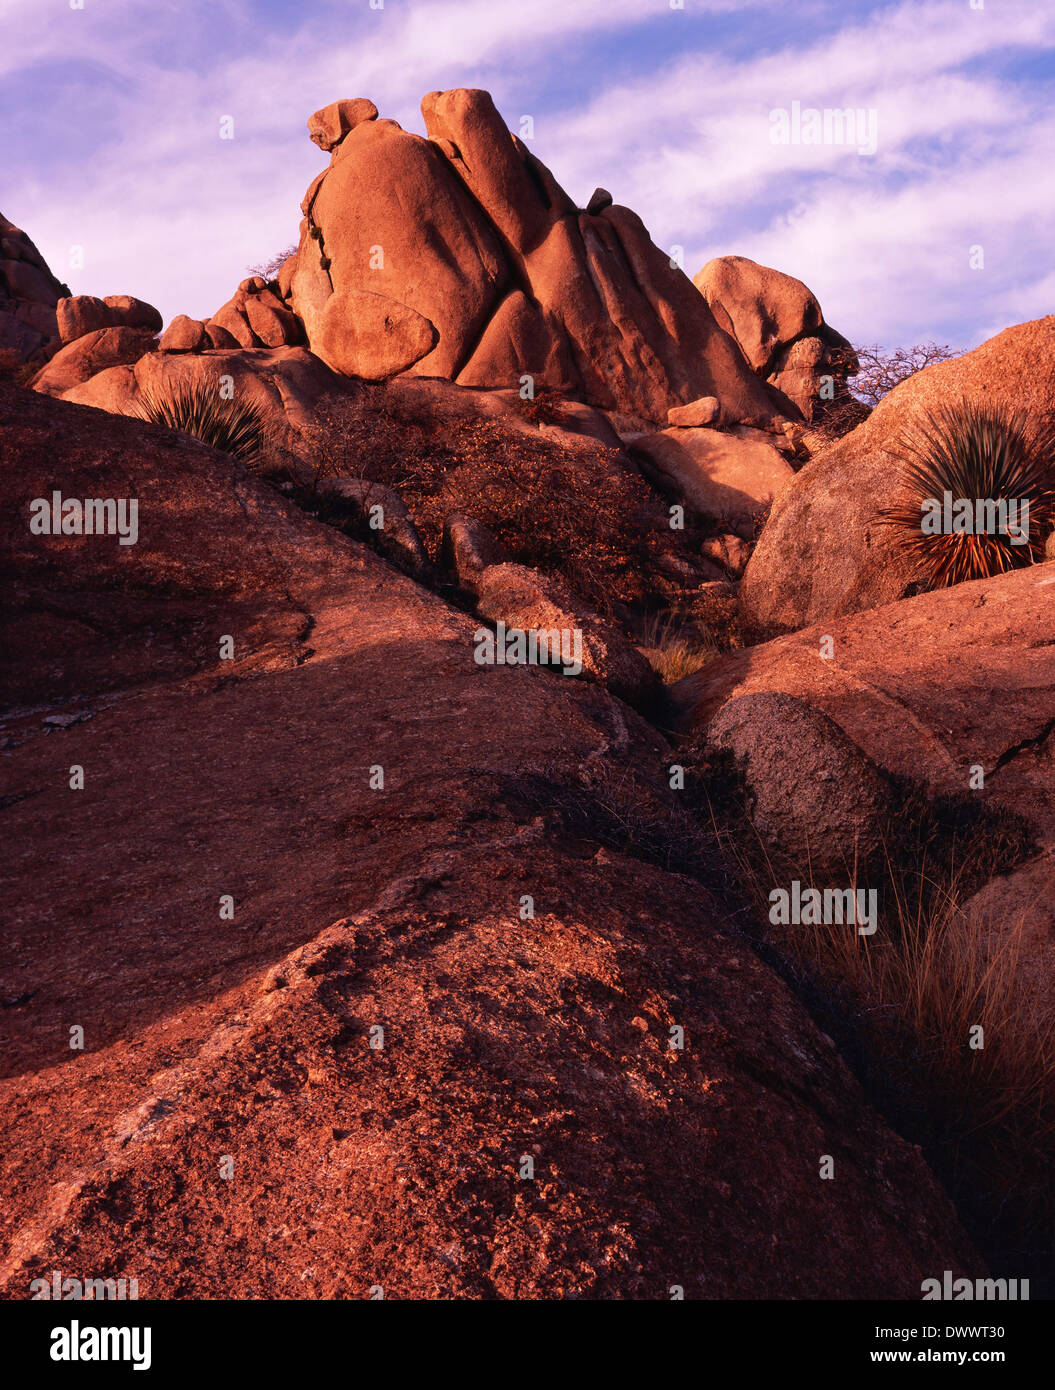 Boulders Reach for Clouds - Stock Image